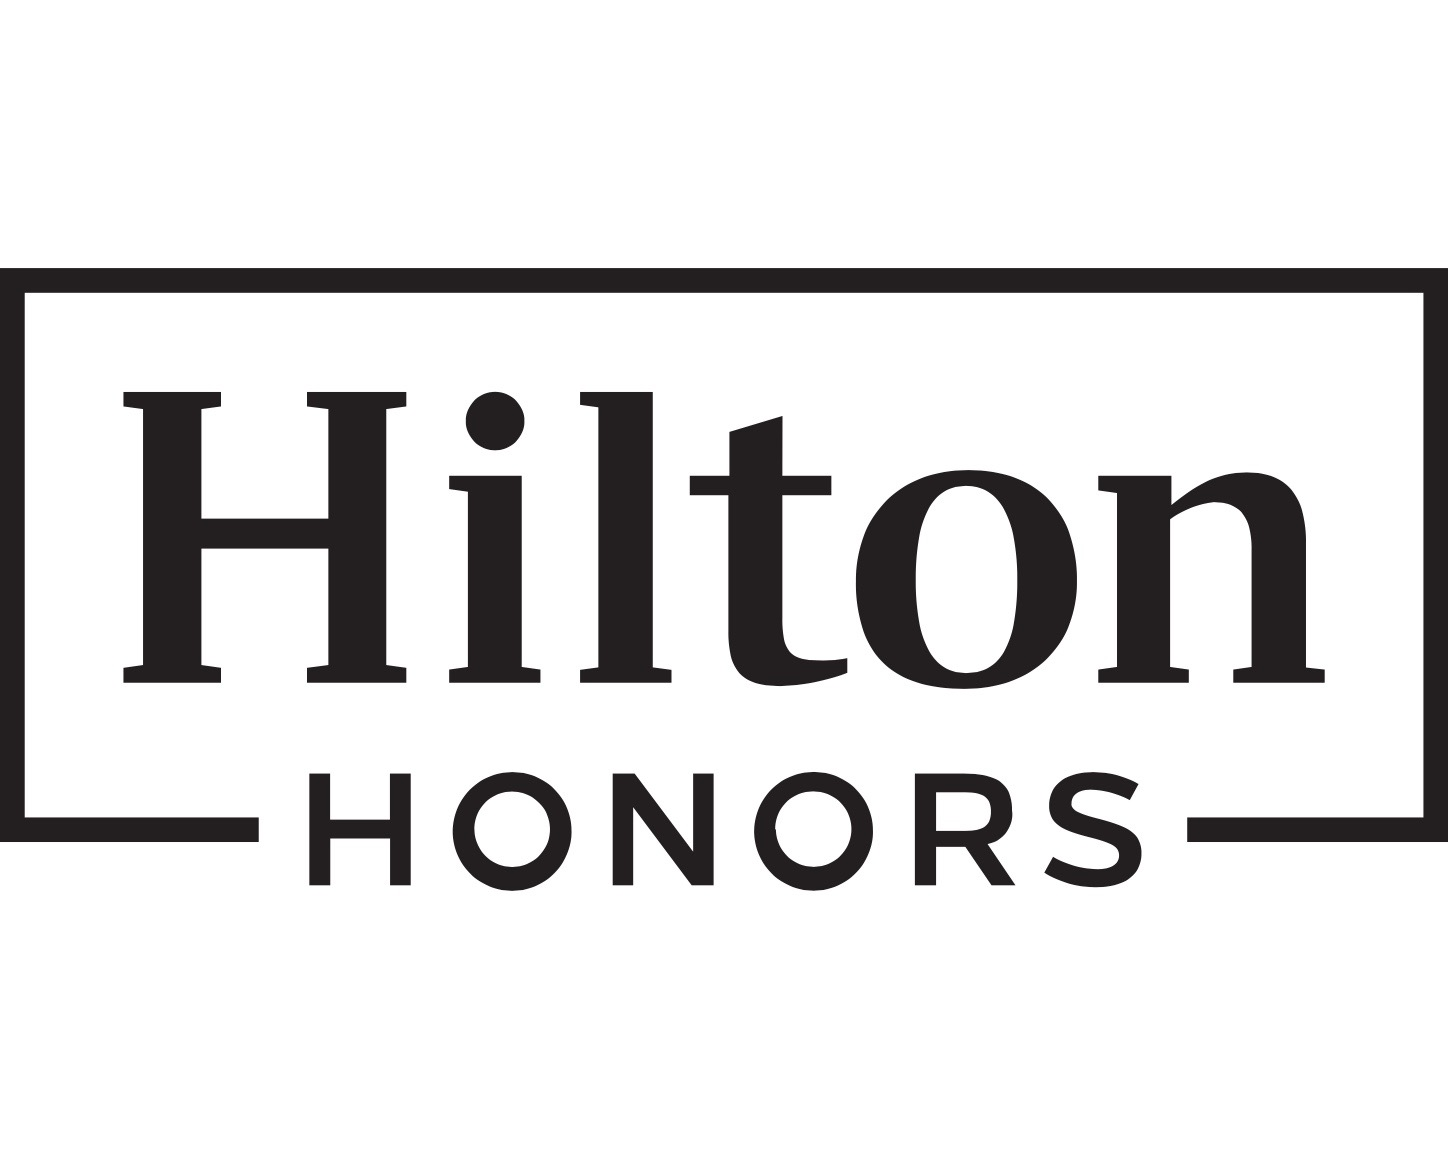 Hilton honors download free clipart with a transparent.